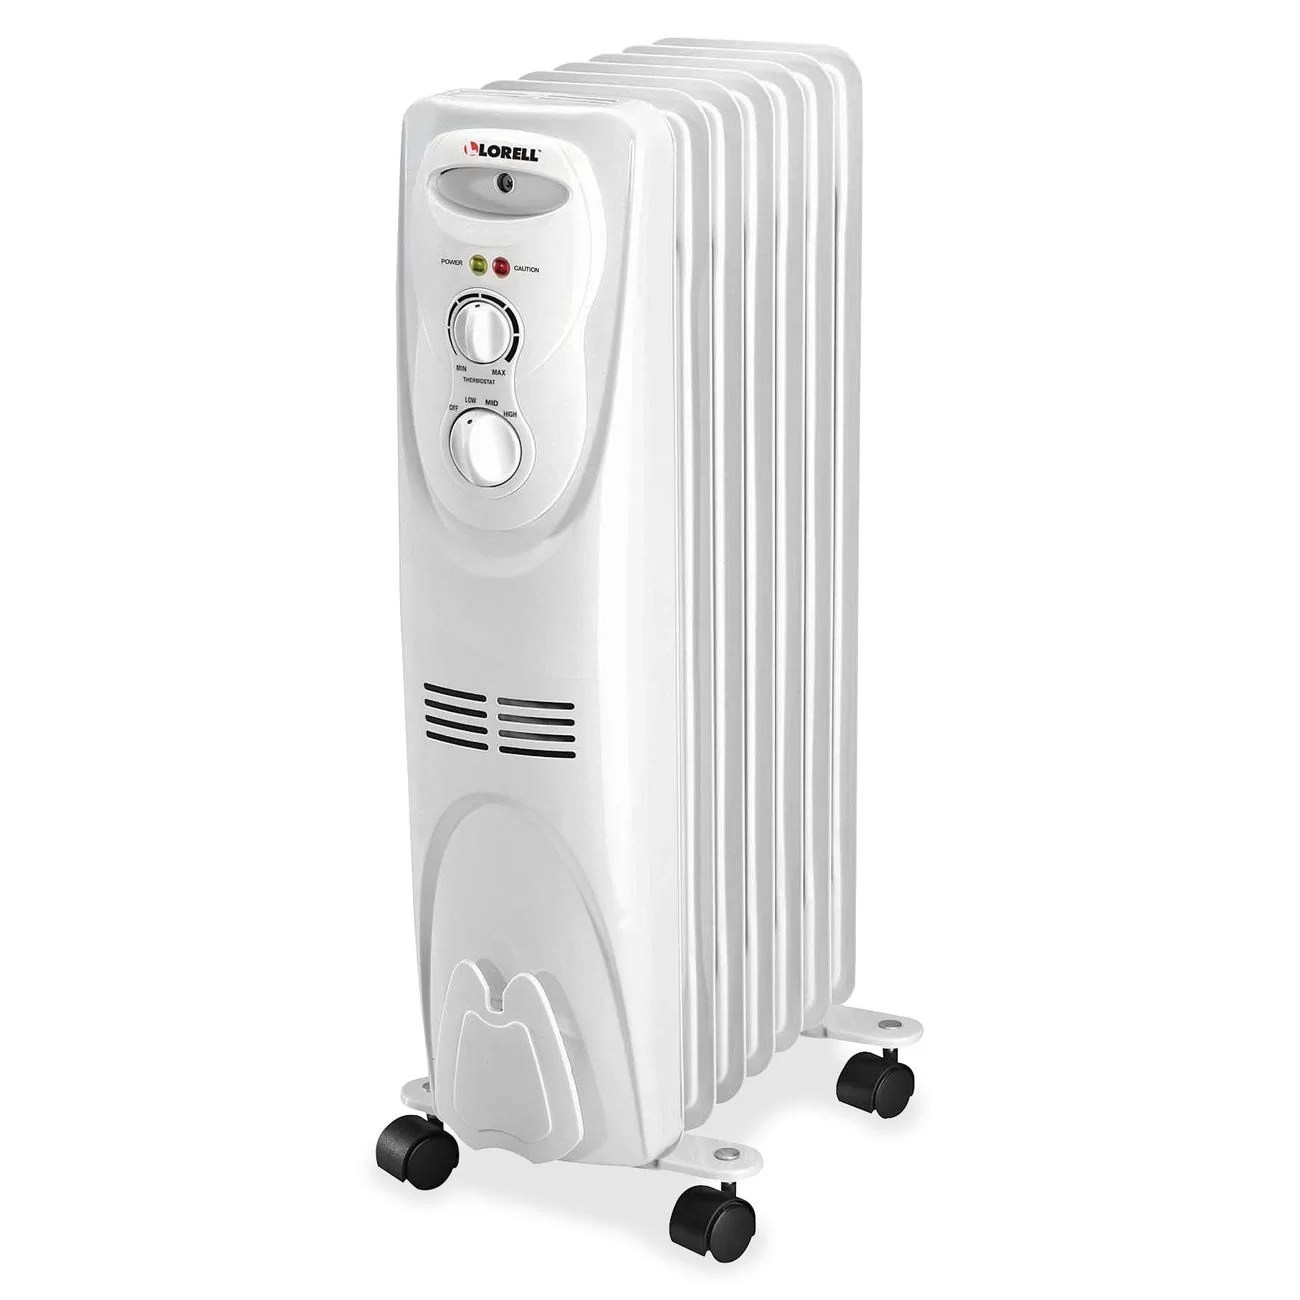 Wattage Radiator 1 500 Watt Oil Filled Radiator Space Heater